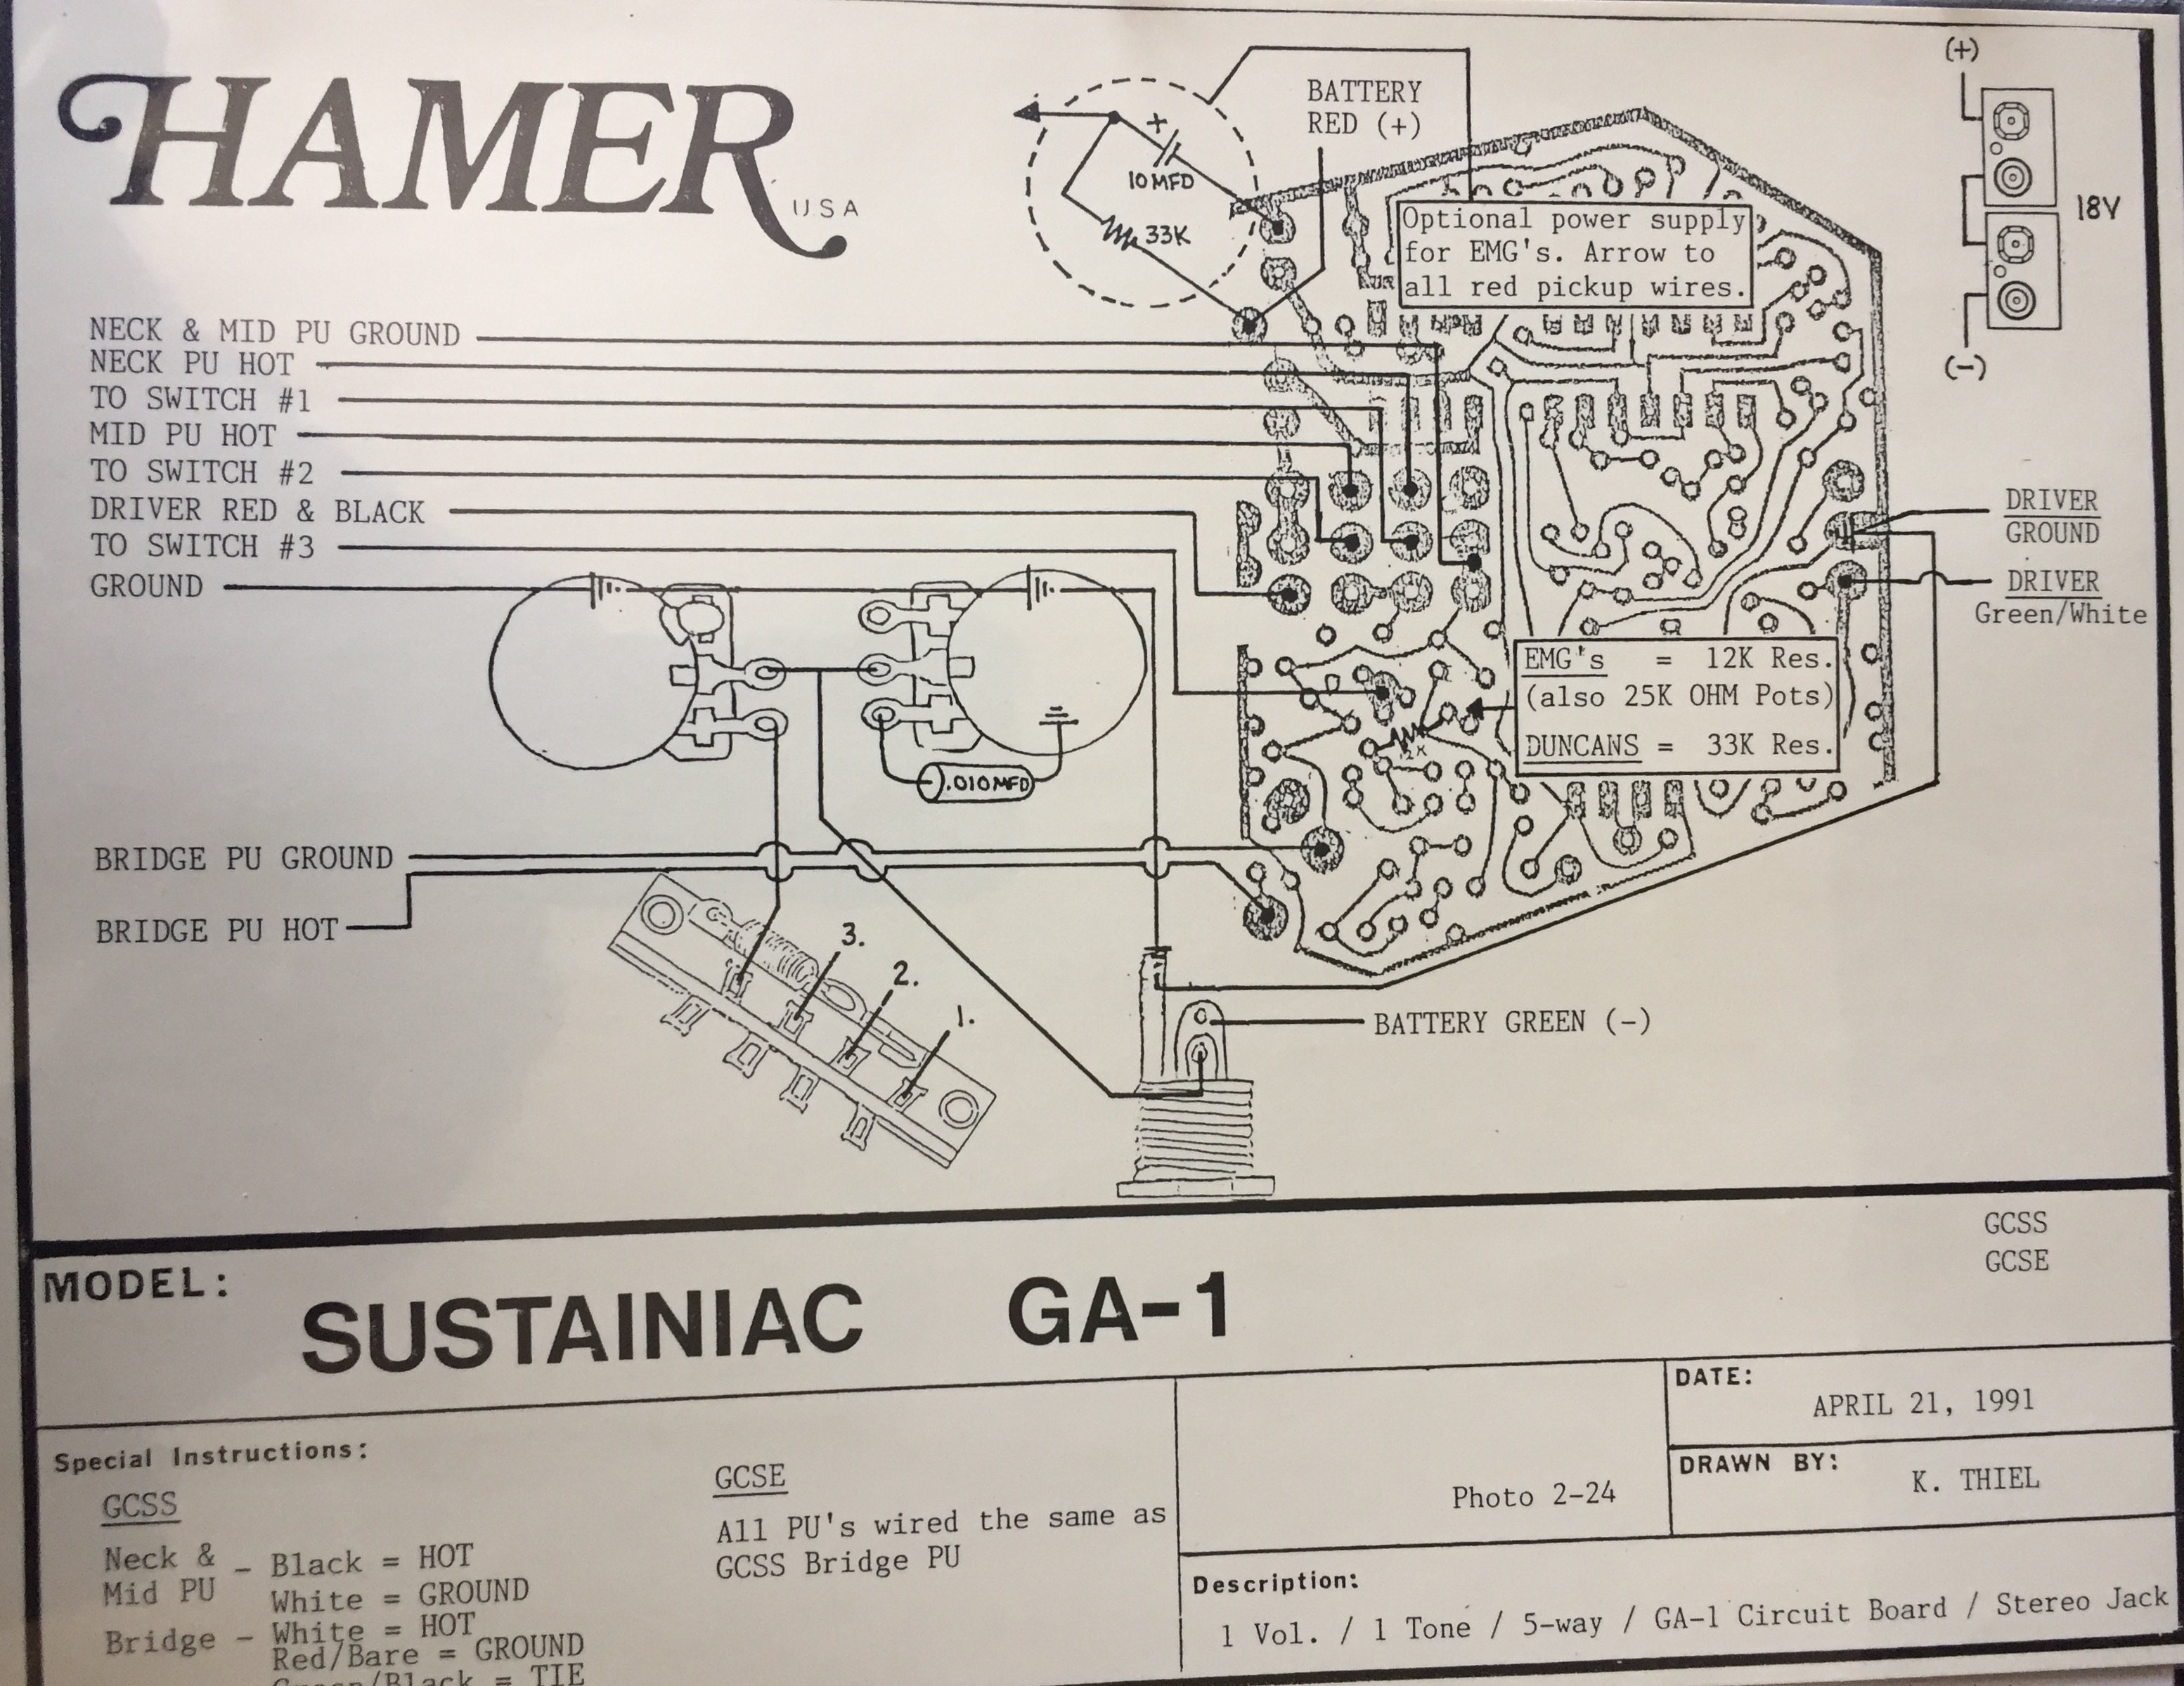 hamer chaparral wiring diagram hamer fan club hamer slammer wiring diagram Basic Electrical Wiring Diagrams